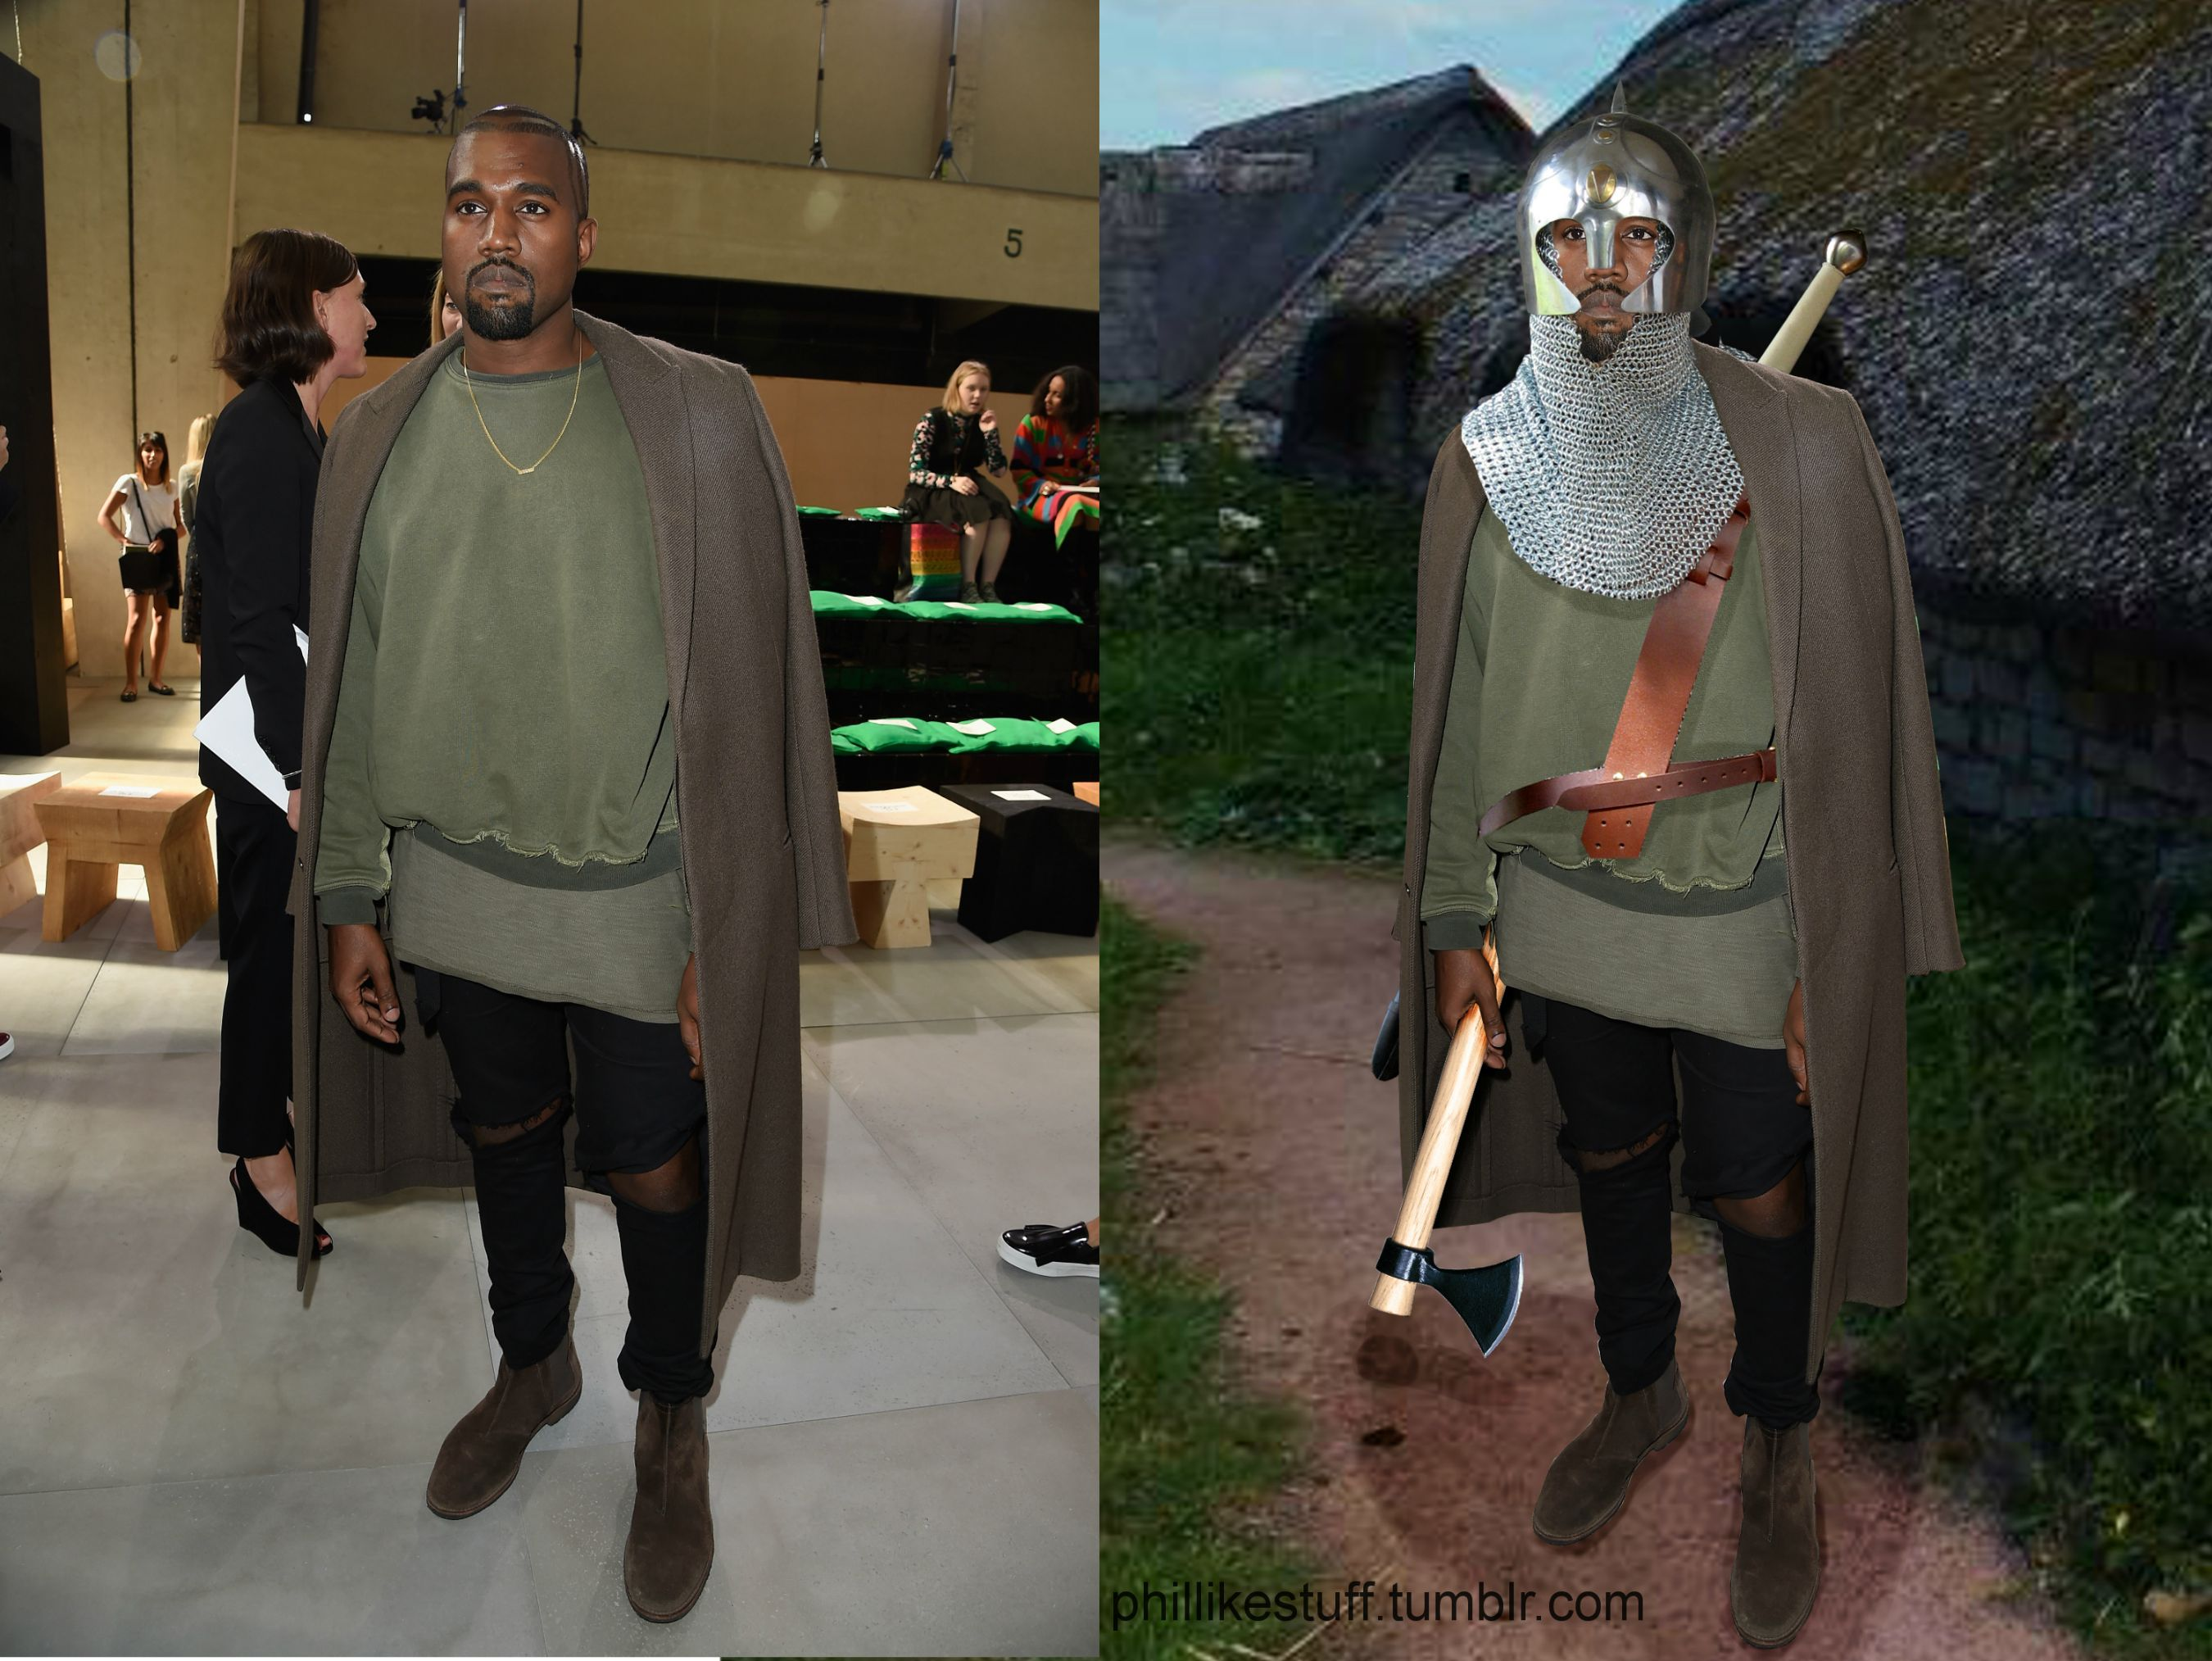 Kanye dressed as a level 1 RPG character at a fashion show